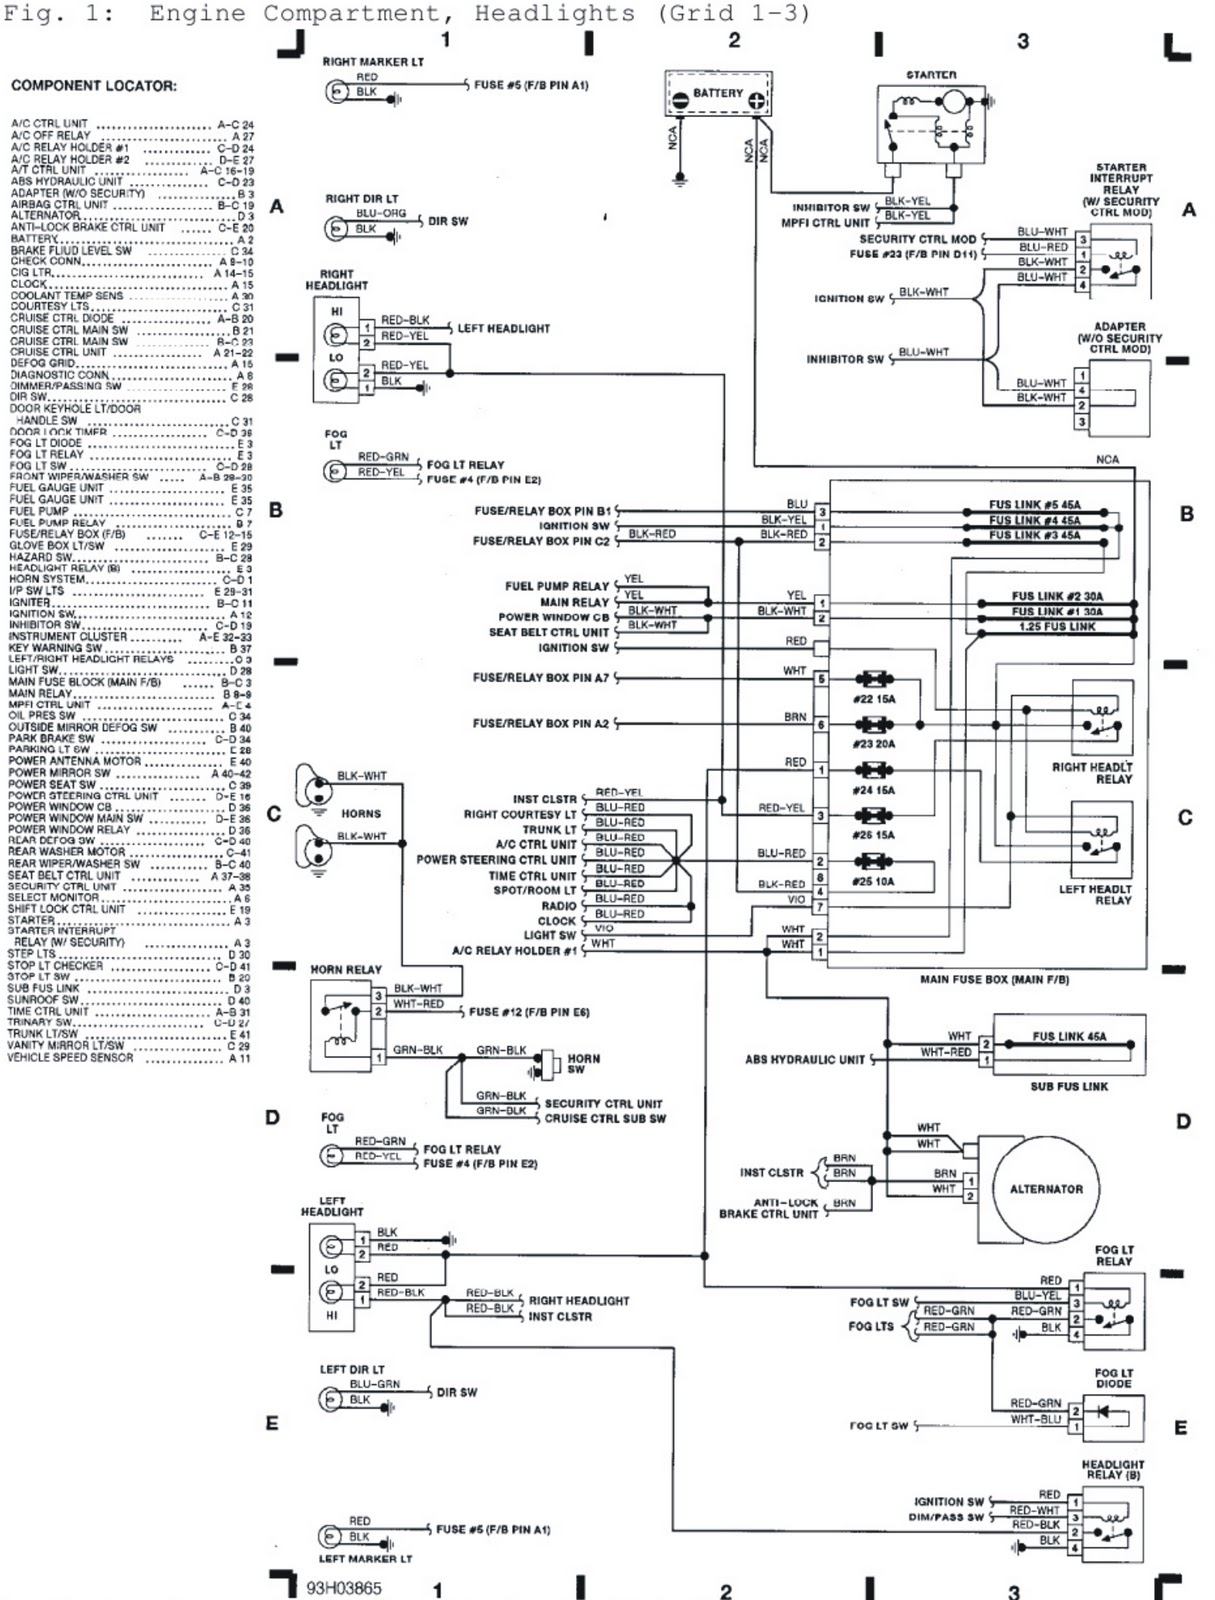 Subaru Svx Engine Diagram, Subaru, Free Engine Image For